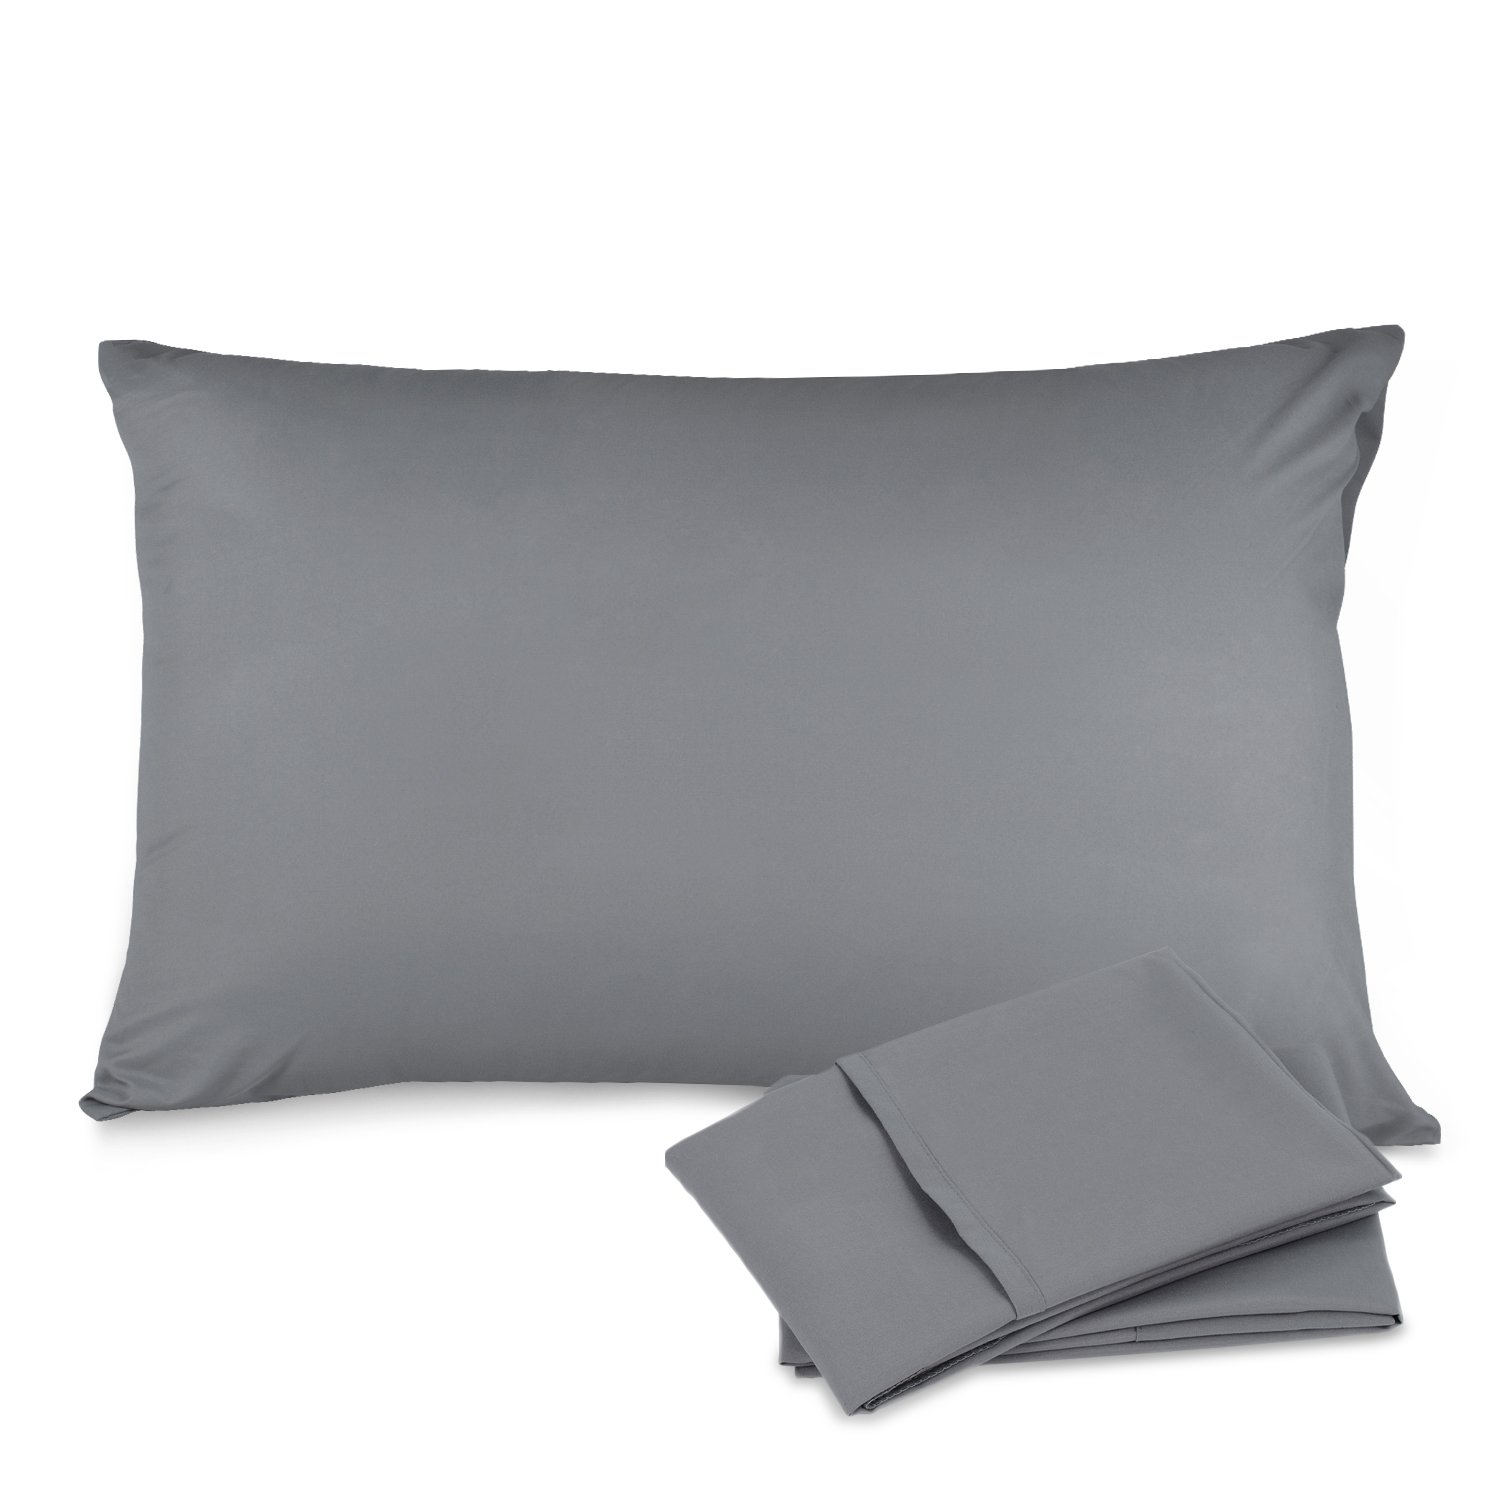 Adoric Set of 2 Pillow Cases Queen, 20x30, Elegant Double Stitched Tailoring, Ultra Soft, Dust Mite & Allergy Control Pillow Protector